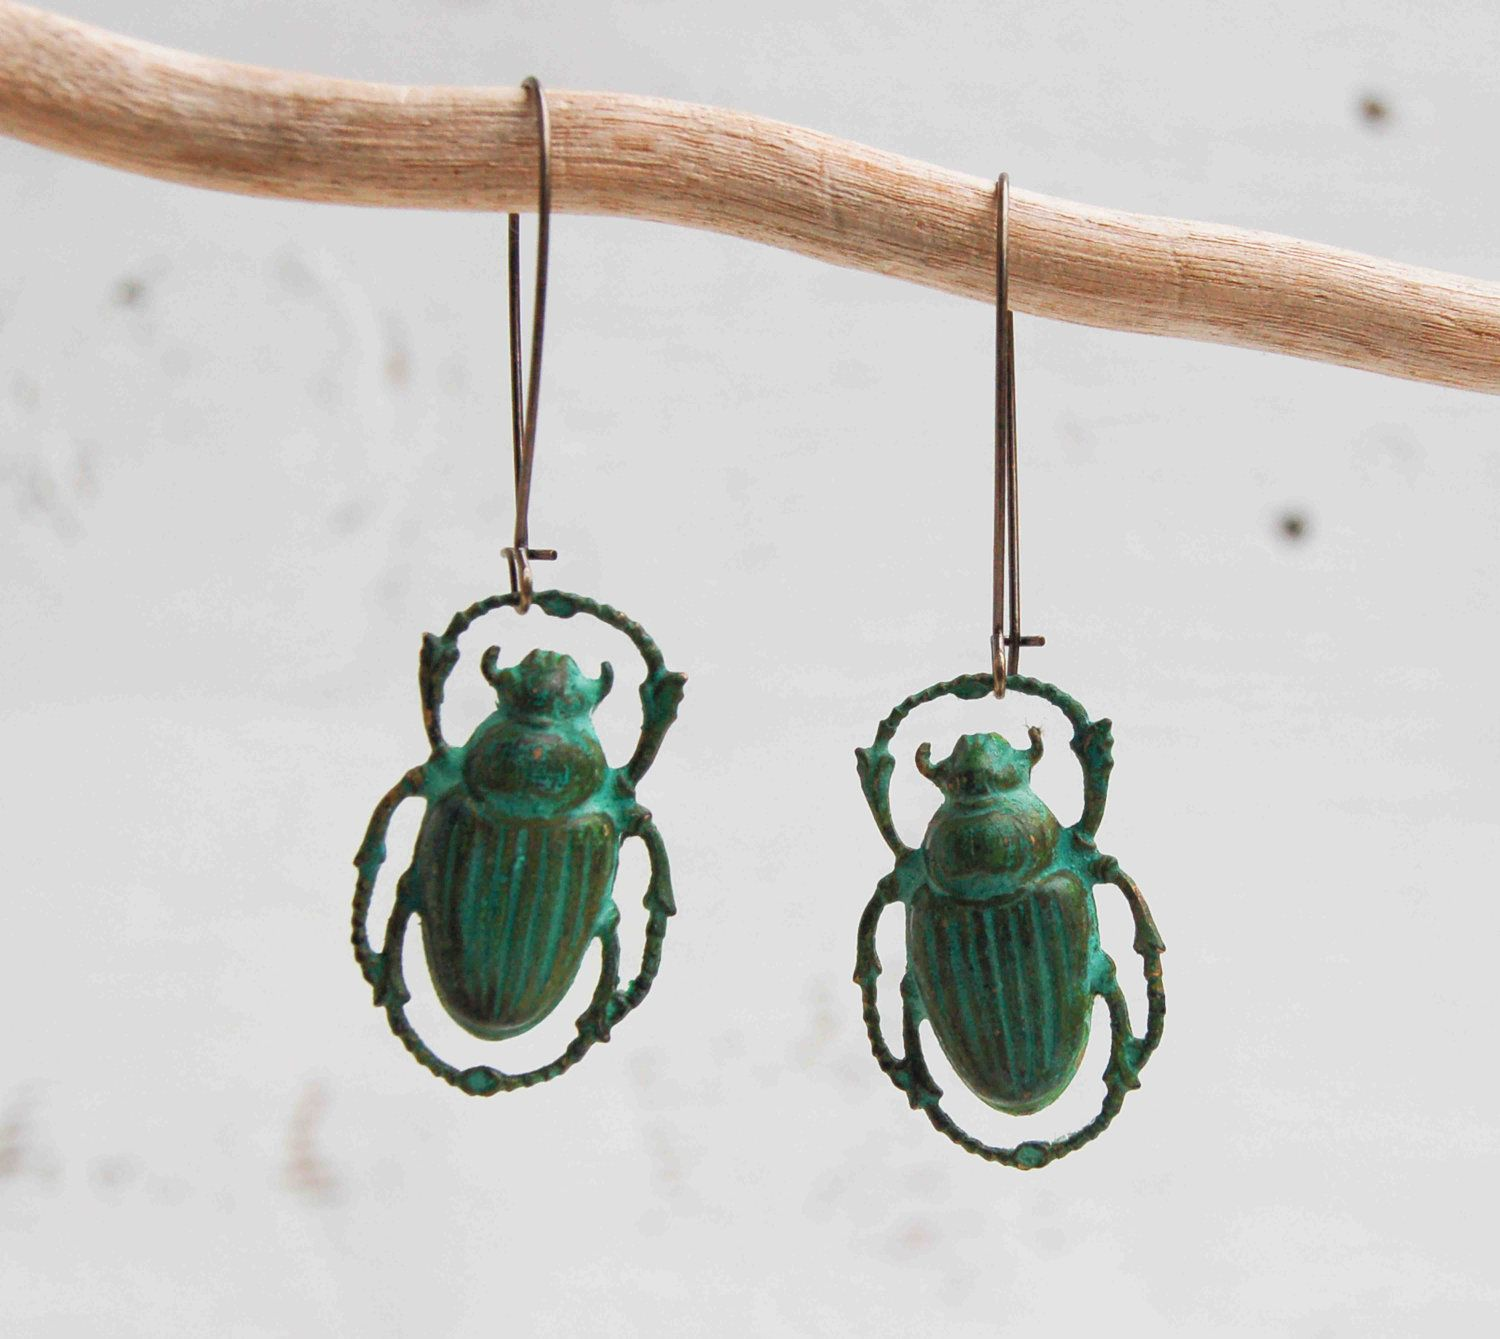 Green Beetle Earrings Just The Thing For Moonrise Kingdom Fans